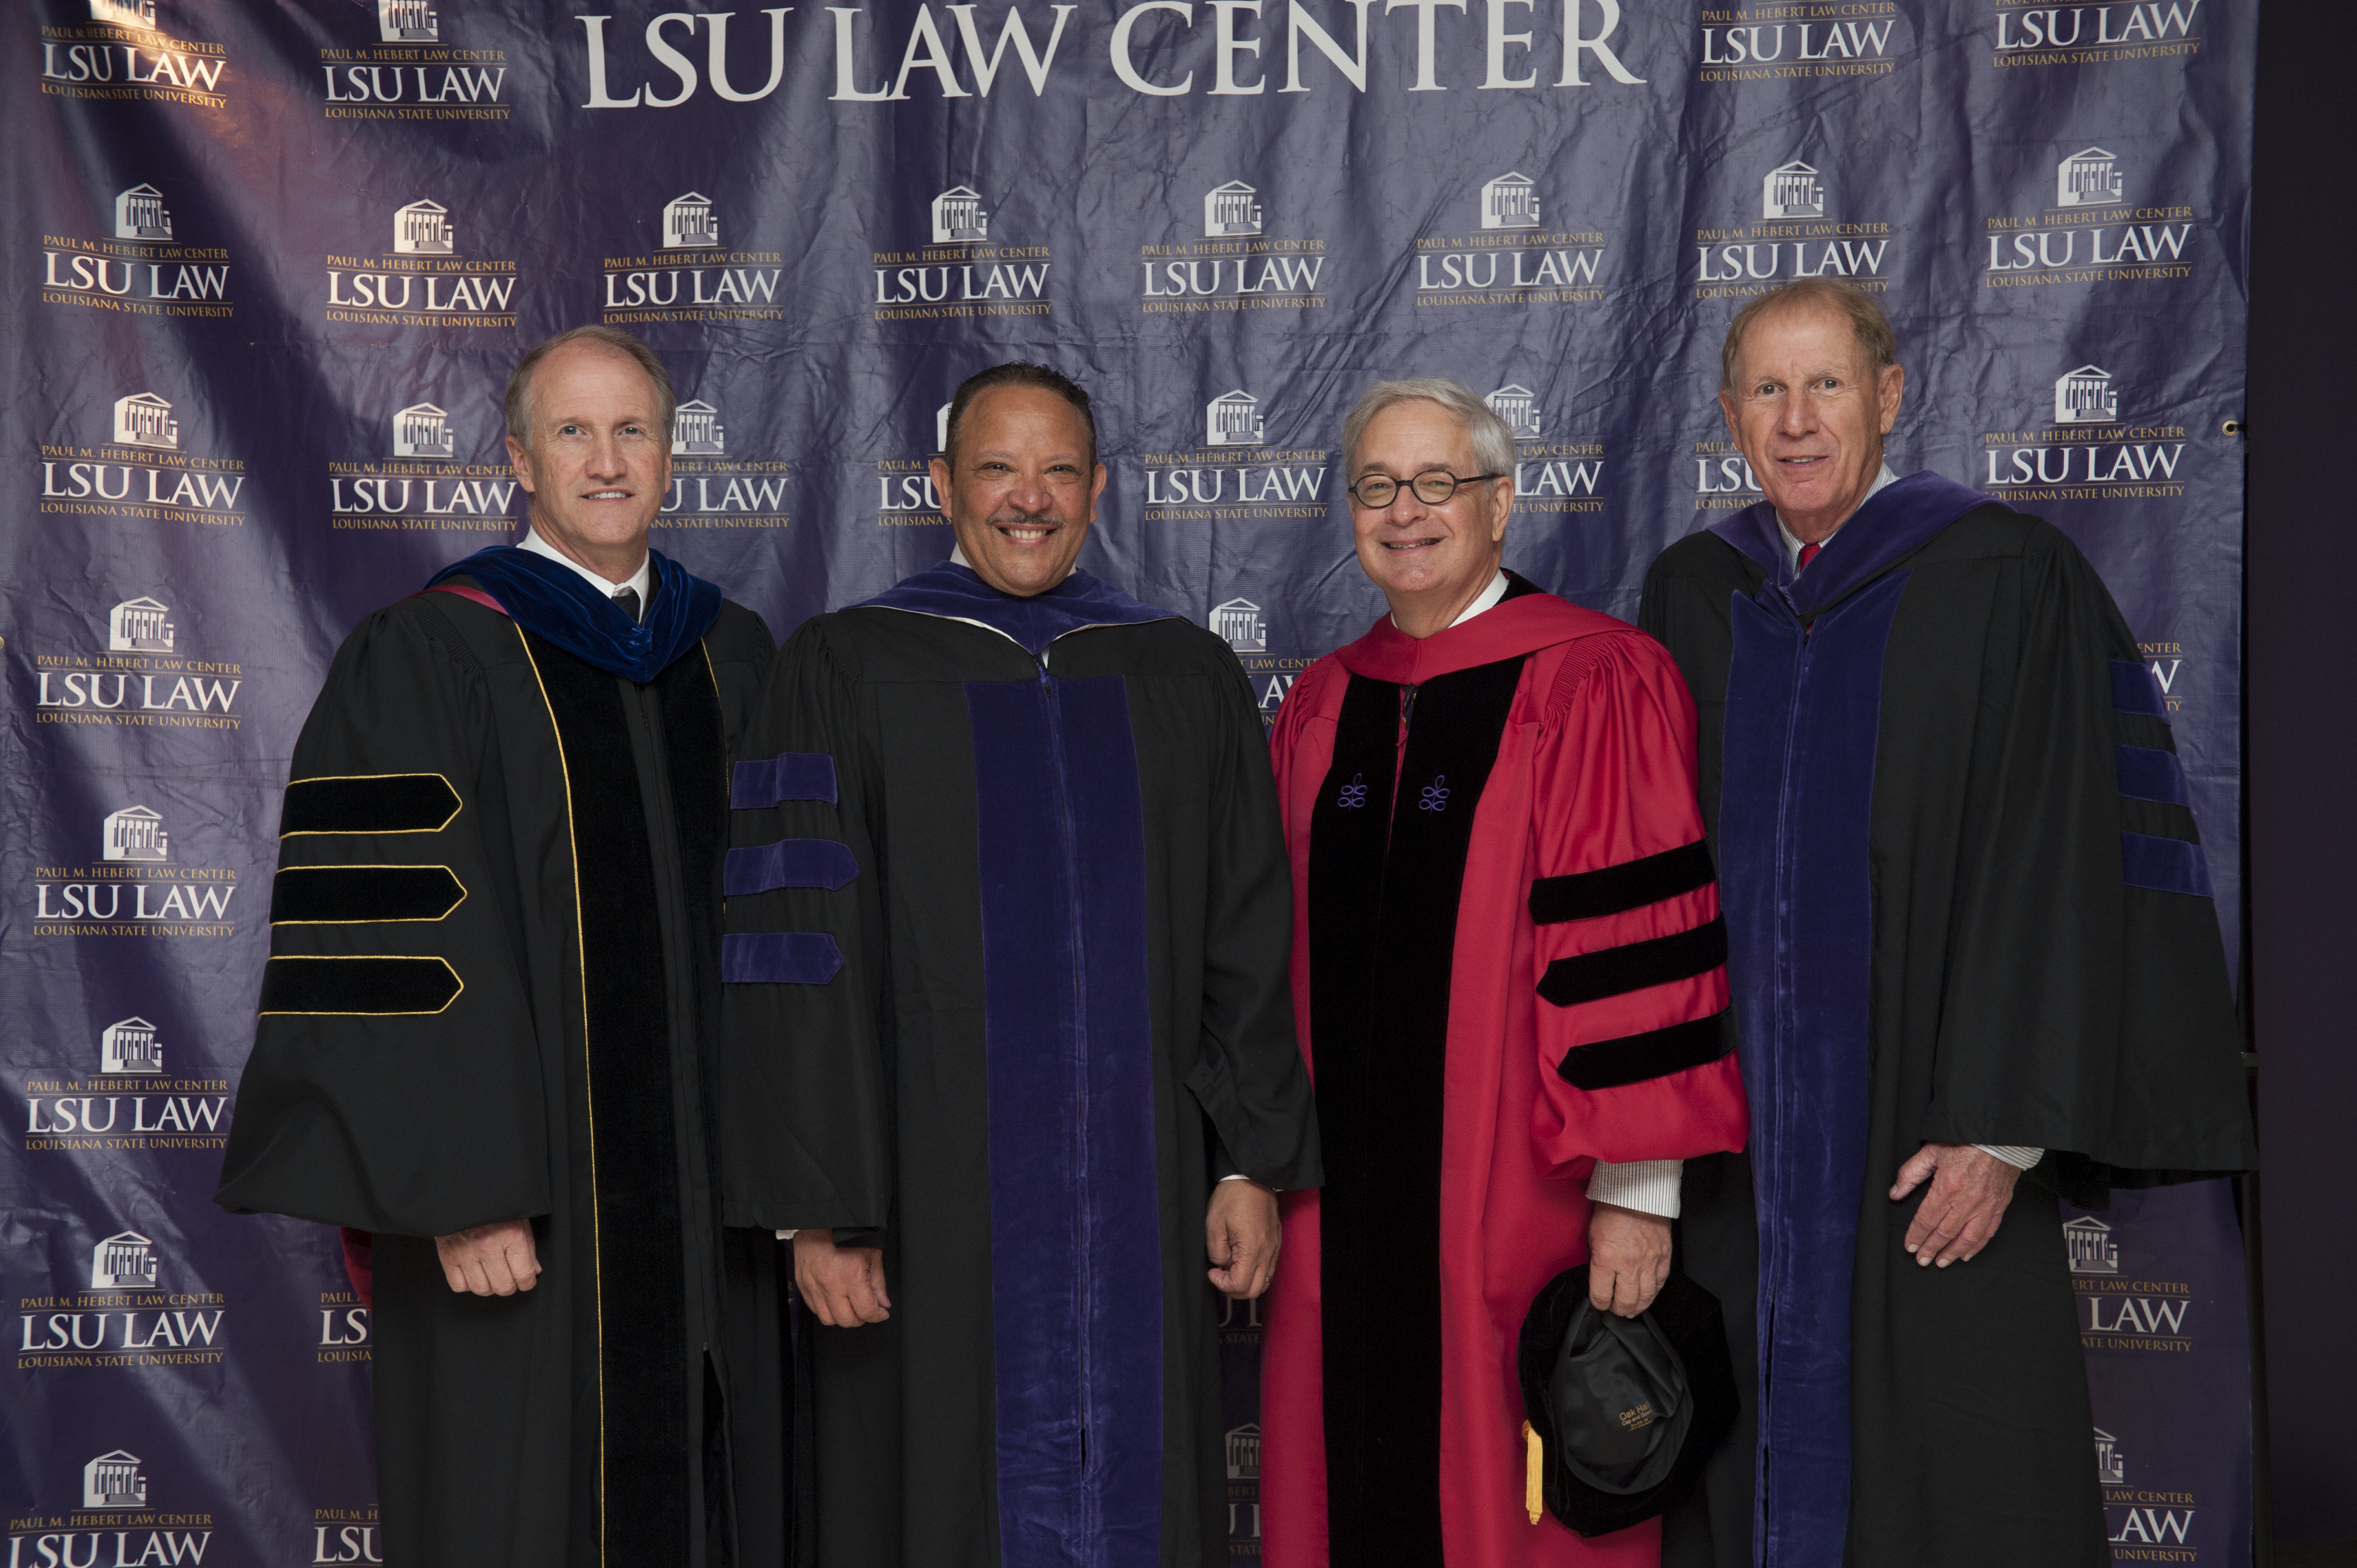 184 Students Receive Degrees At 2015 Lsu Law Center